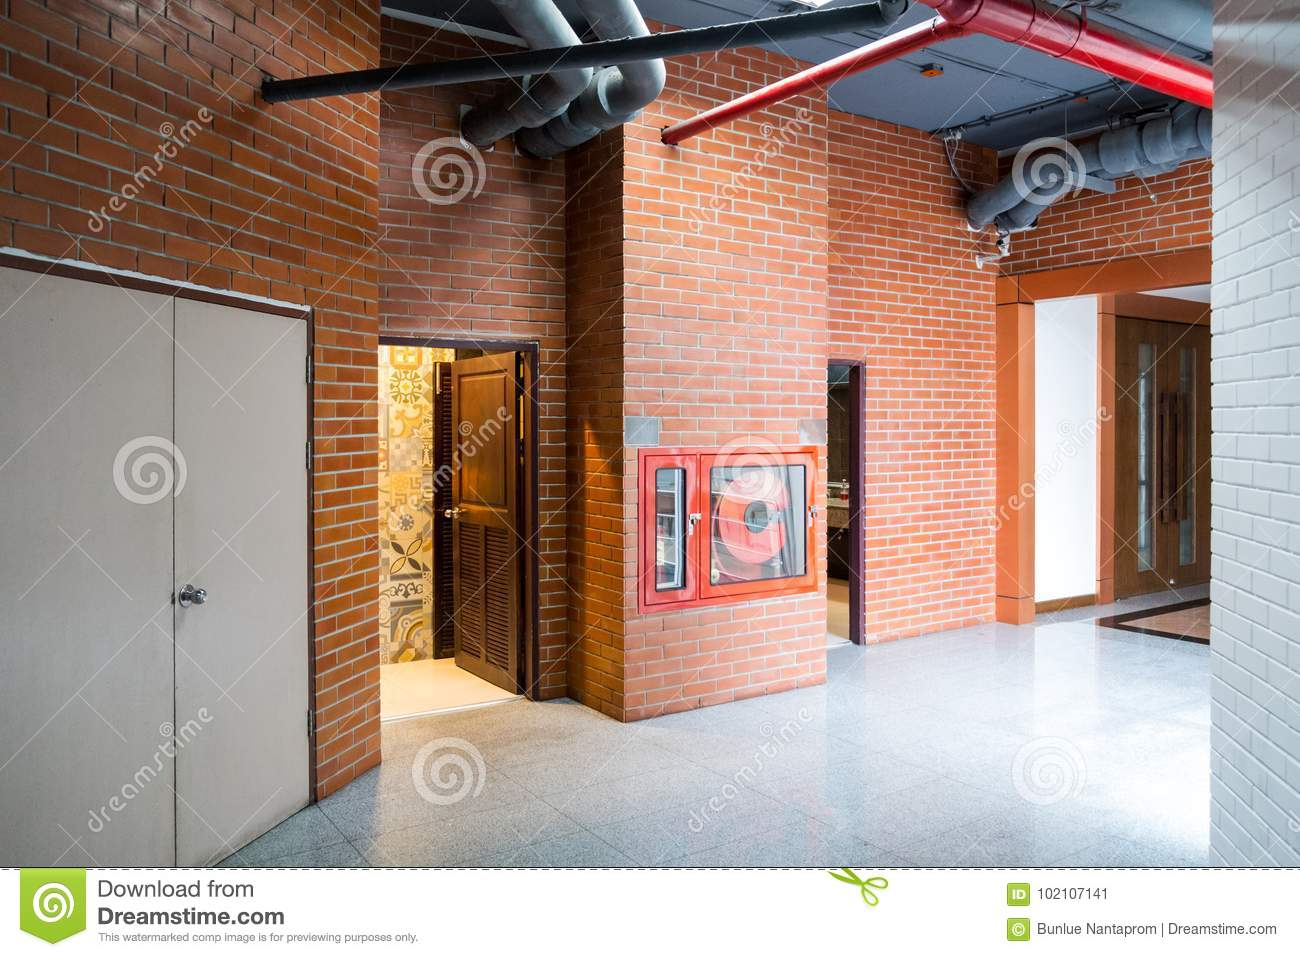 Modern Building Interior With Old Vintage Brick Wall Hallway Of Stock Image Image Of Ceiling Building 102107141